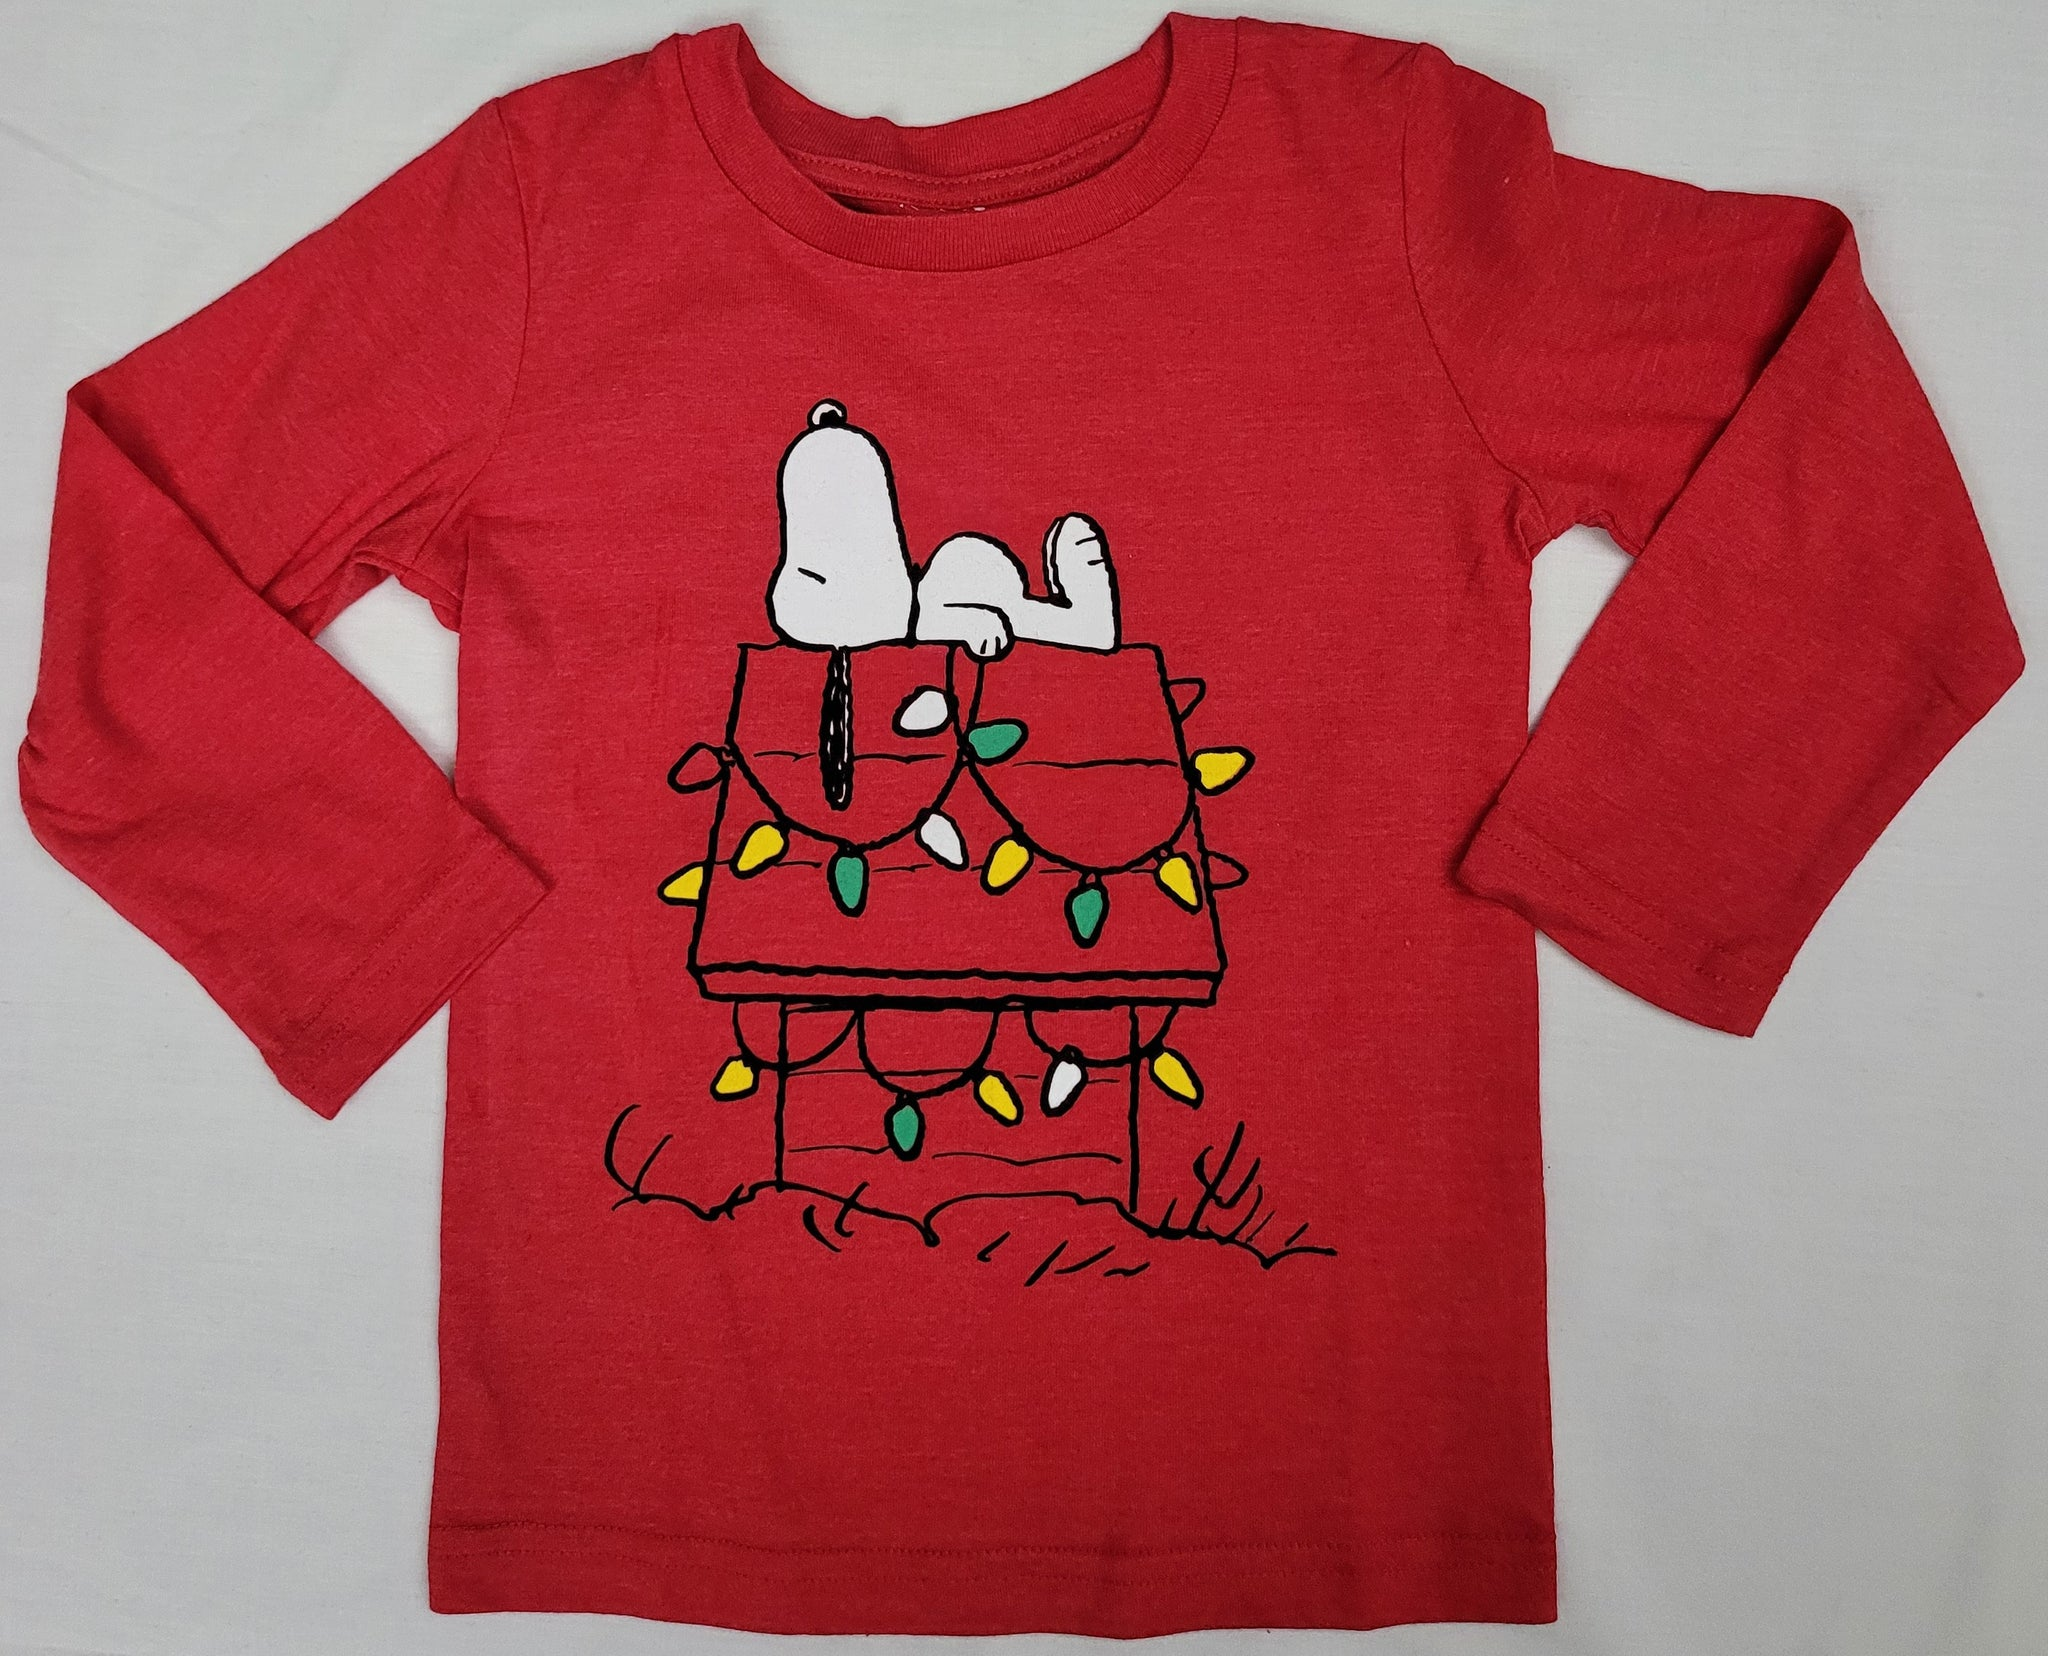 Dog House Christmas Lights Snoopy Peanuts Boys T-Shirt (Red)